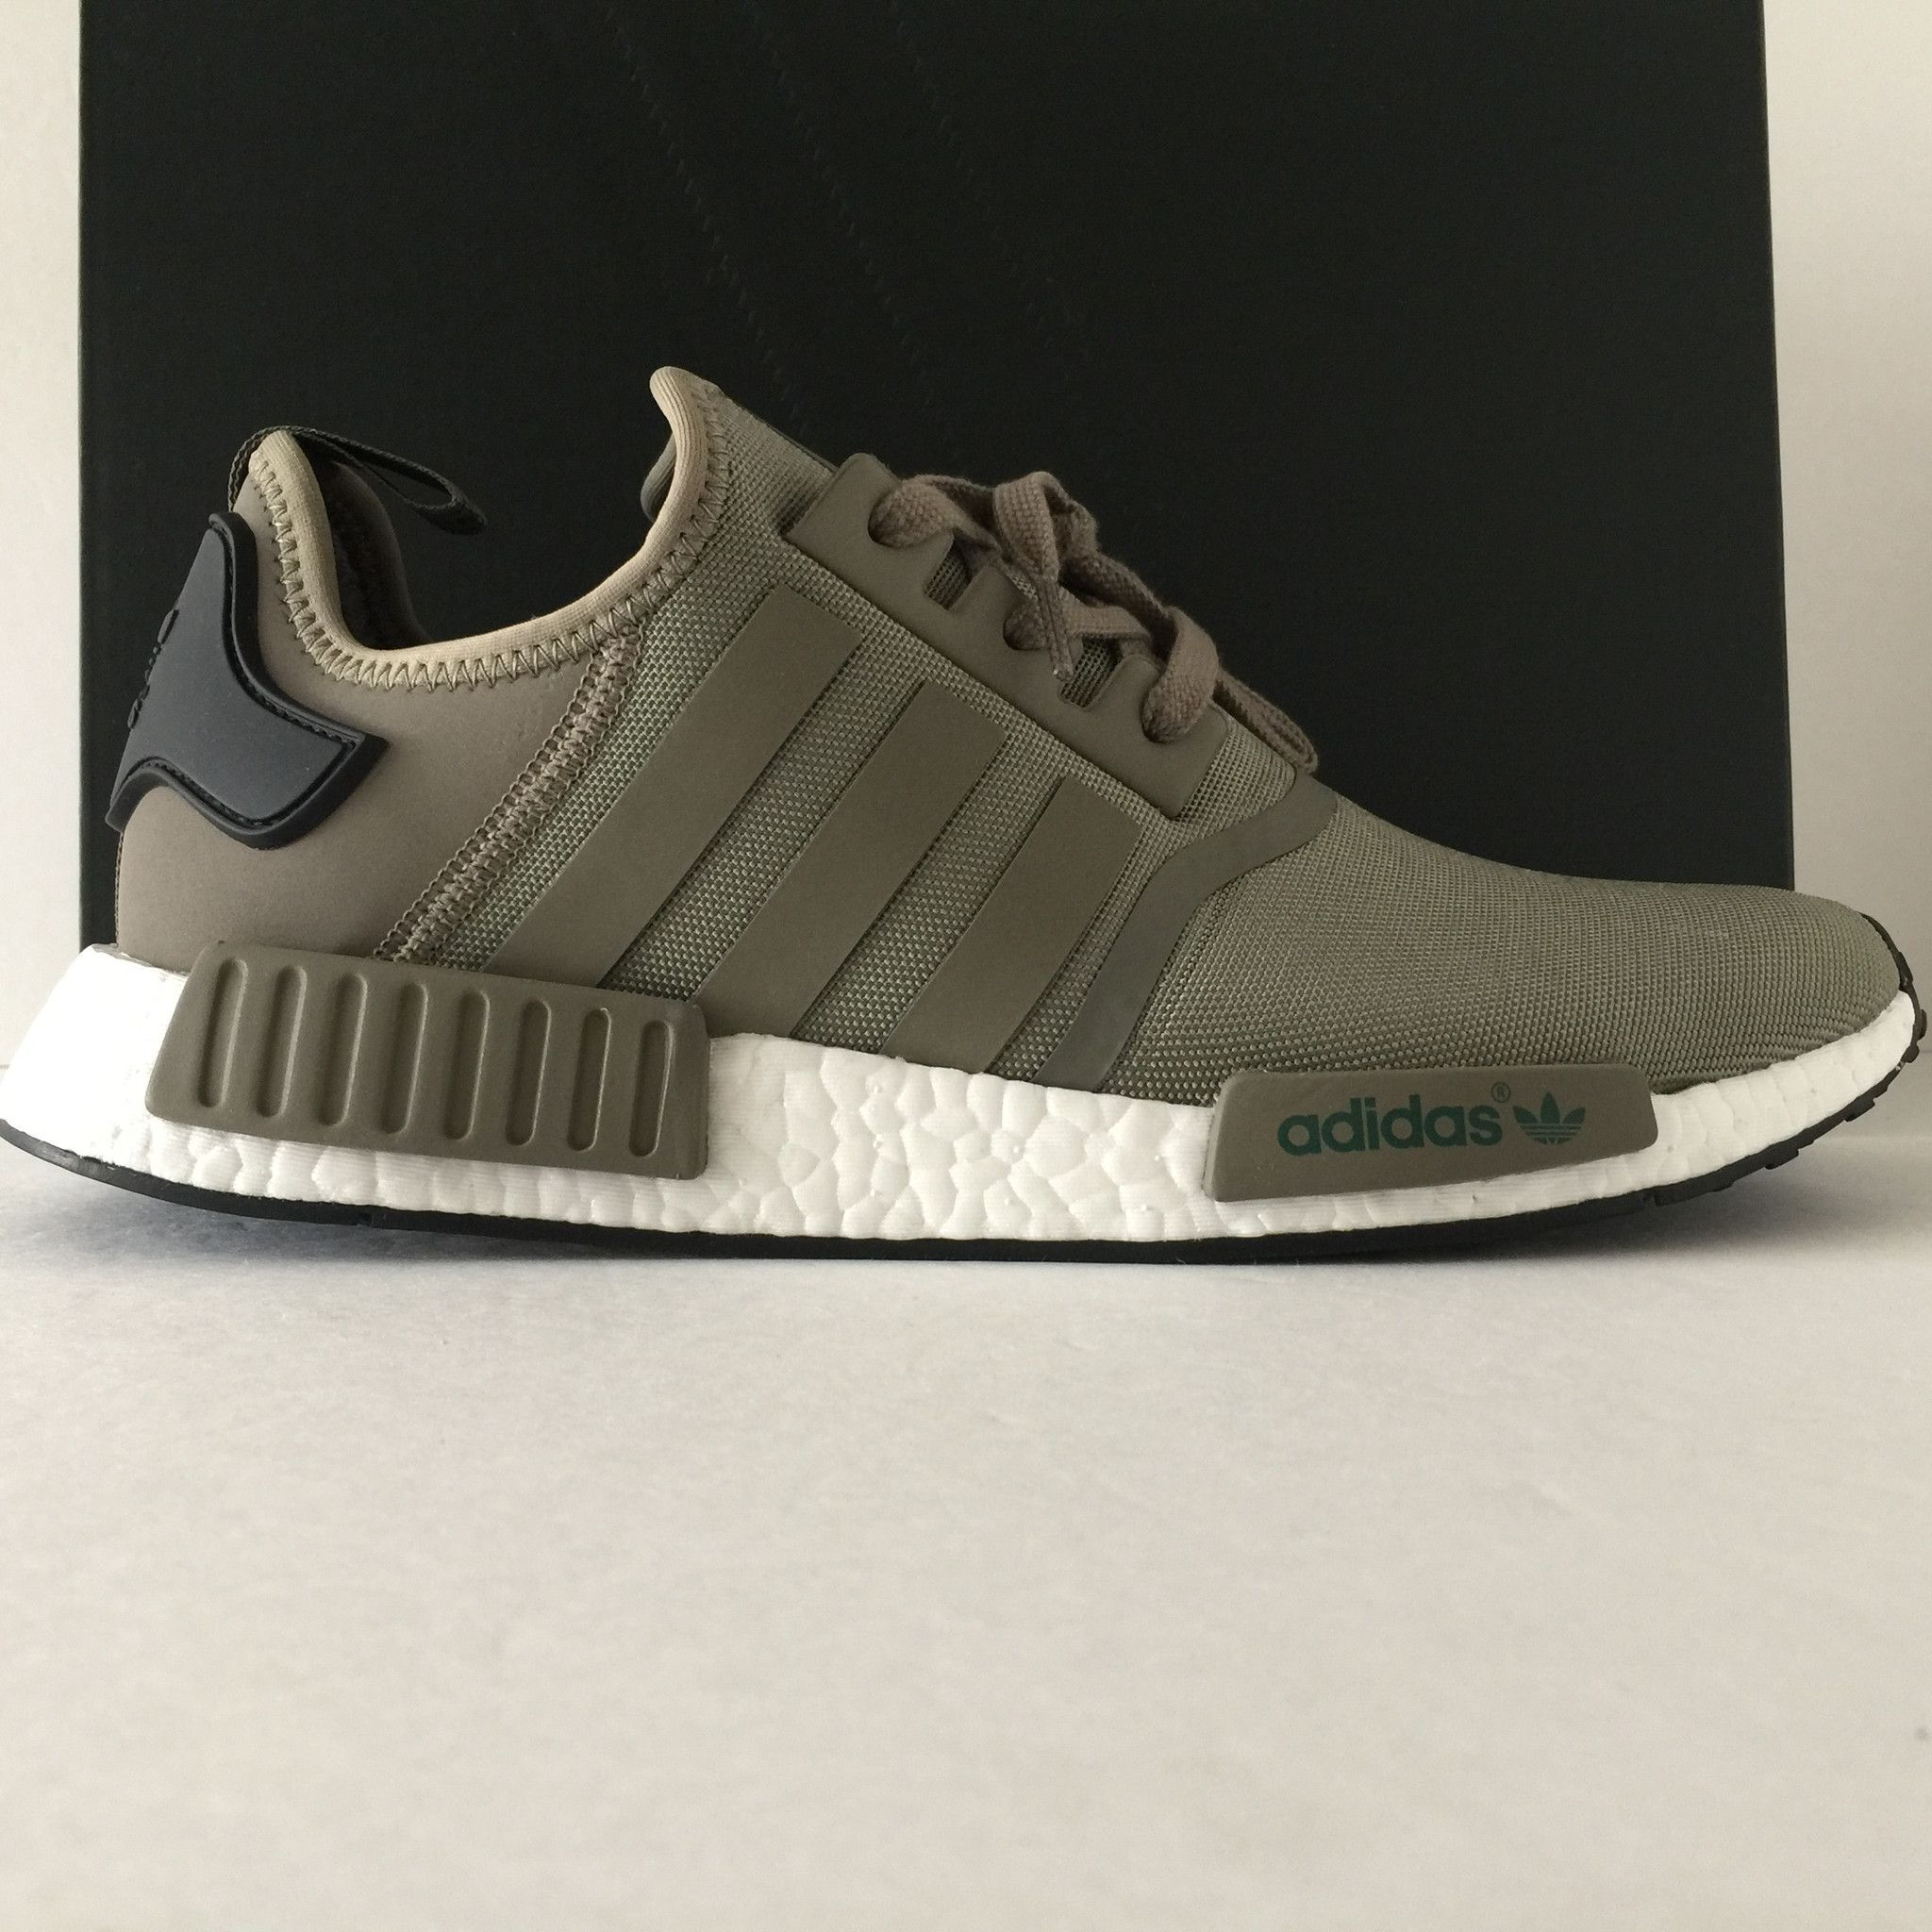 white adidas shoes jcpenney adidas nmd r1 pk japan black